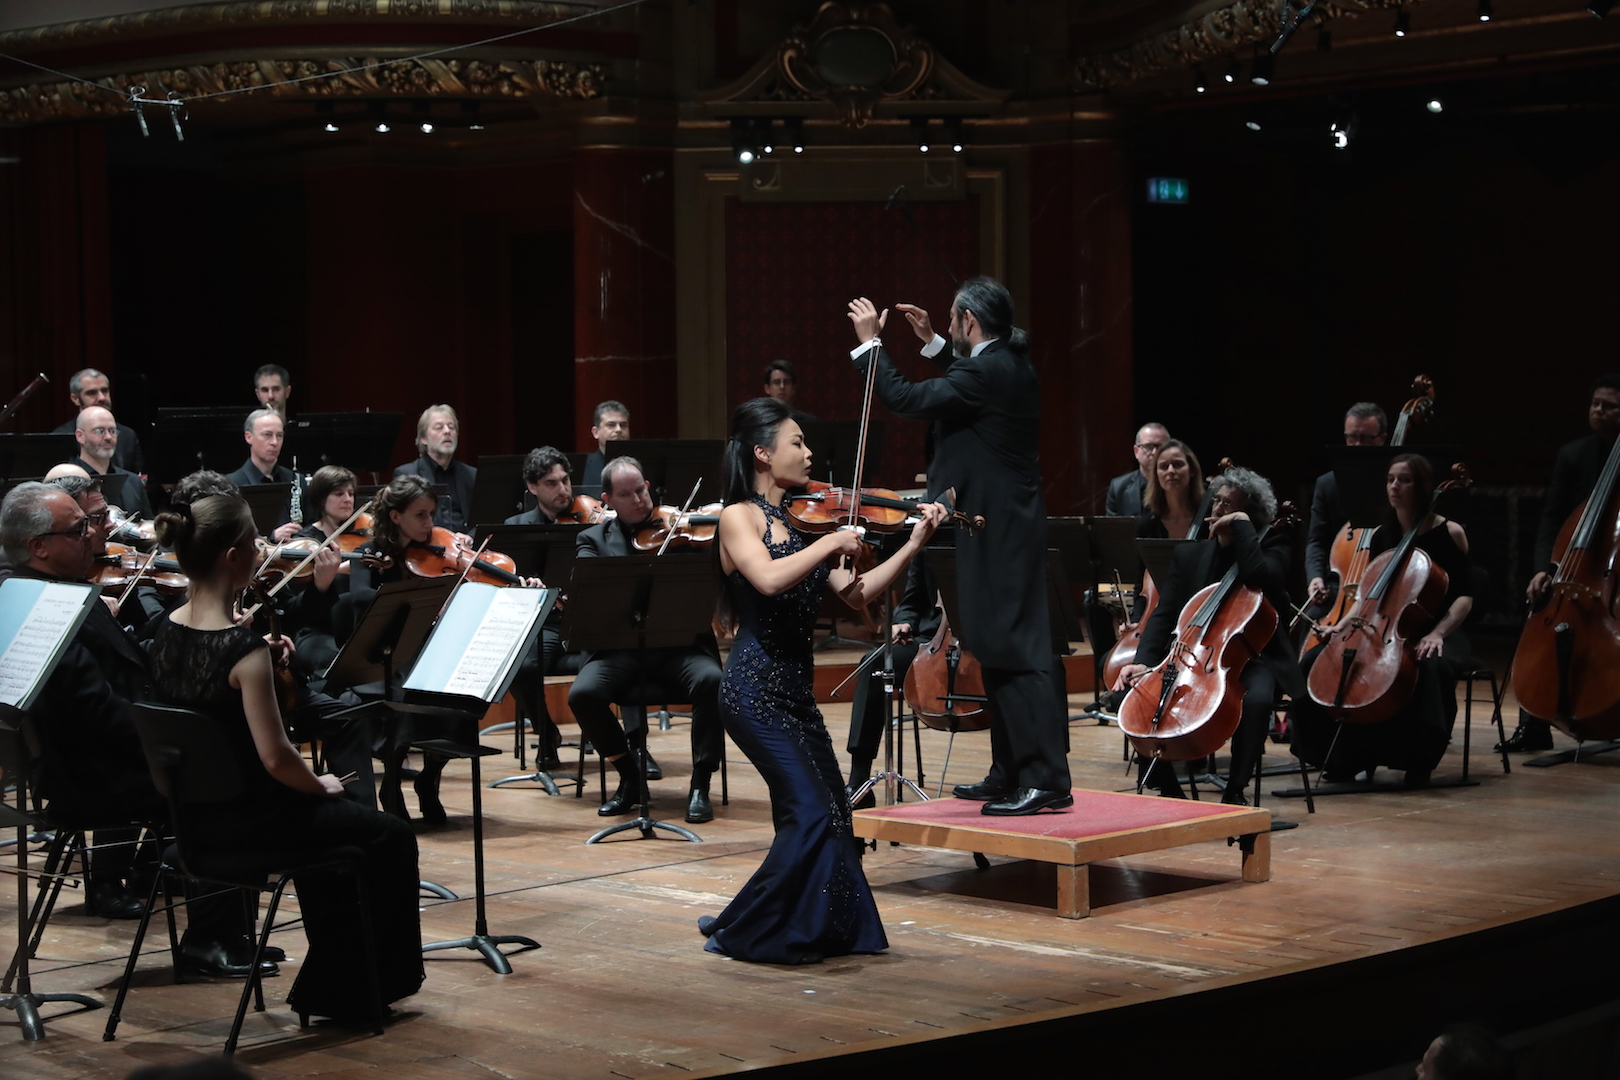 Concours Menuhin Victoria Hall Gala ouverture@Nathalie Mastail-Hirosawa.JPG